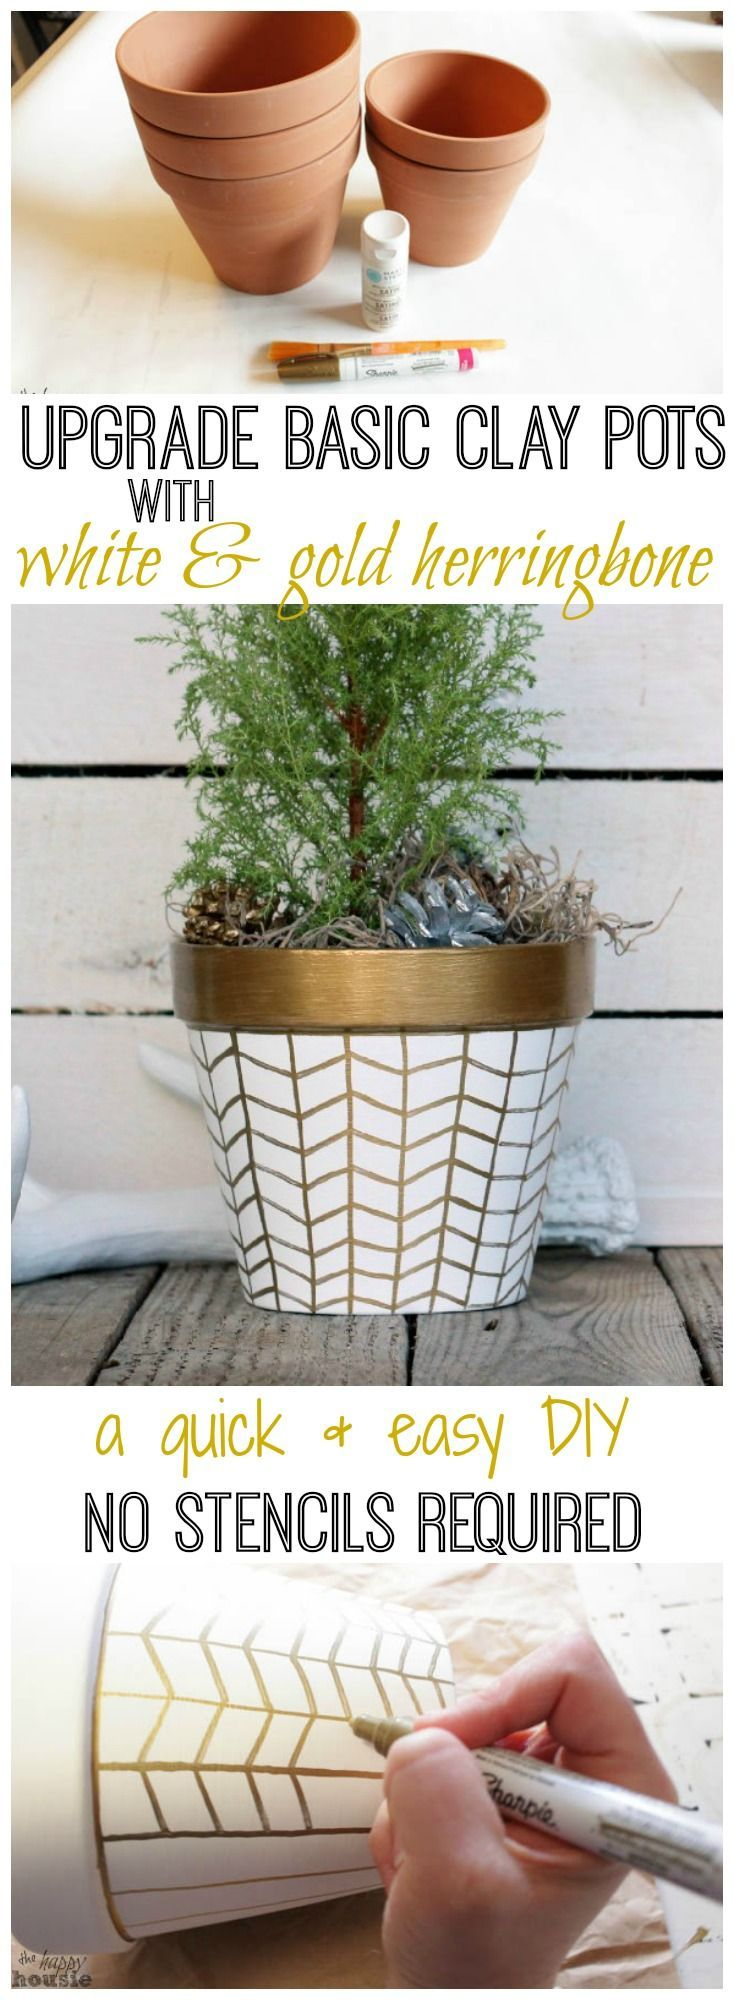 Diy gold white herringbone decorative flower pots beautiful diy gold white herringbone decorative flower pots dhlflorist Image collections